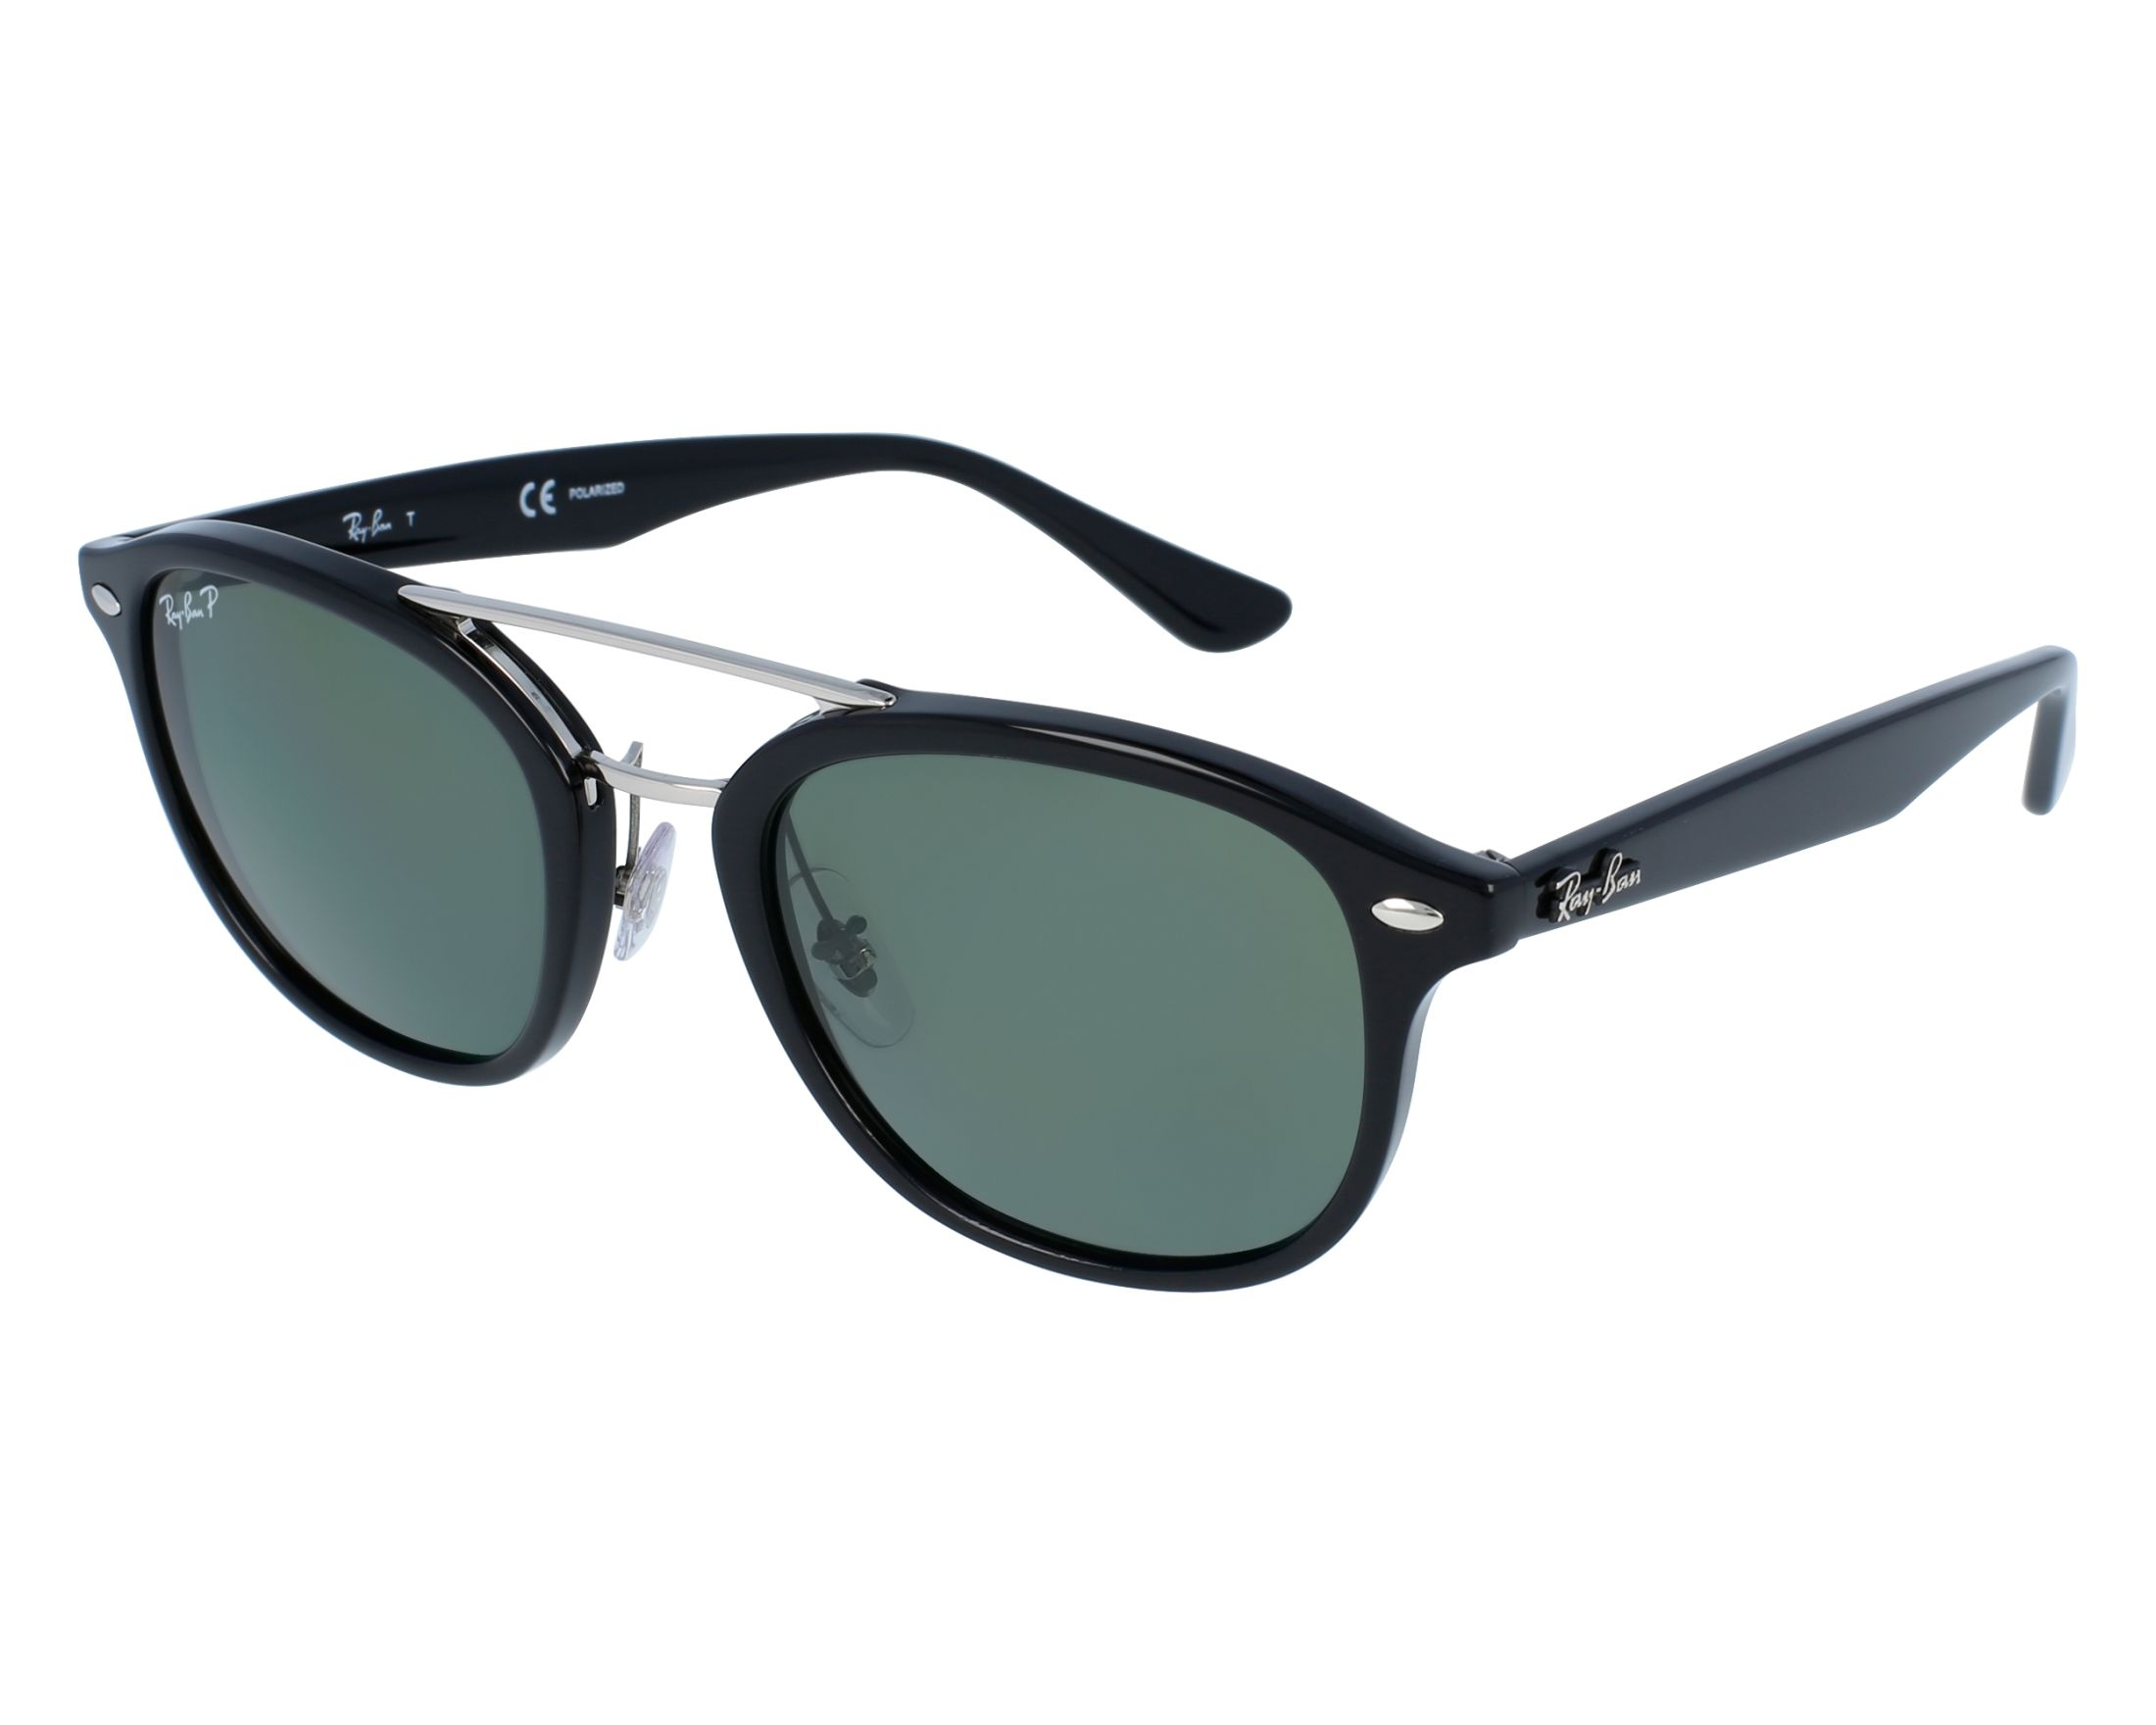 b68b60c358 Sunglasses Ray-Ban RB-2183 901 9A 53-21 Black Silver front